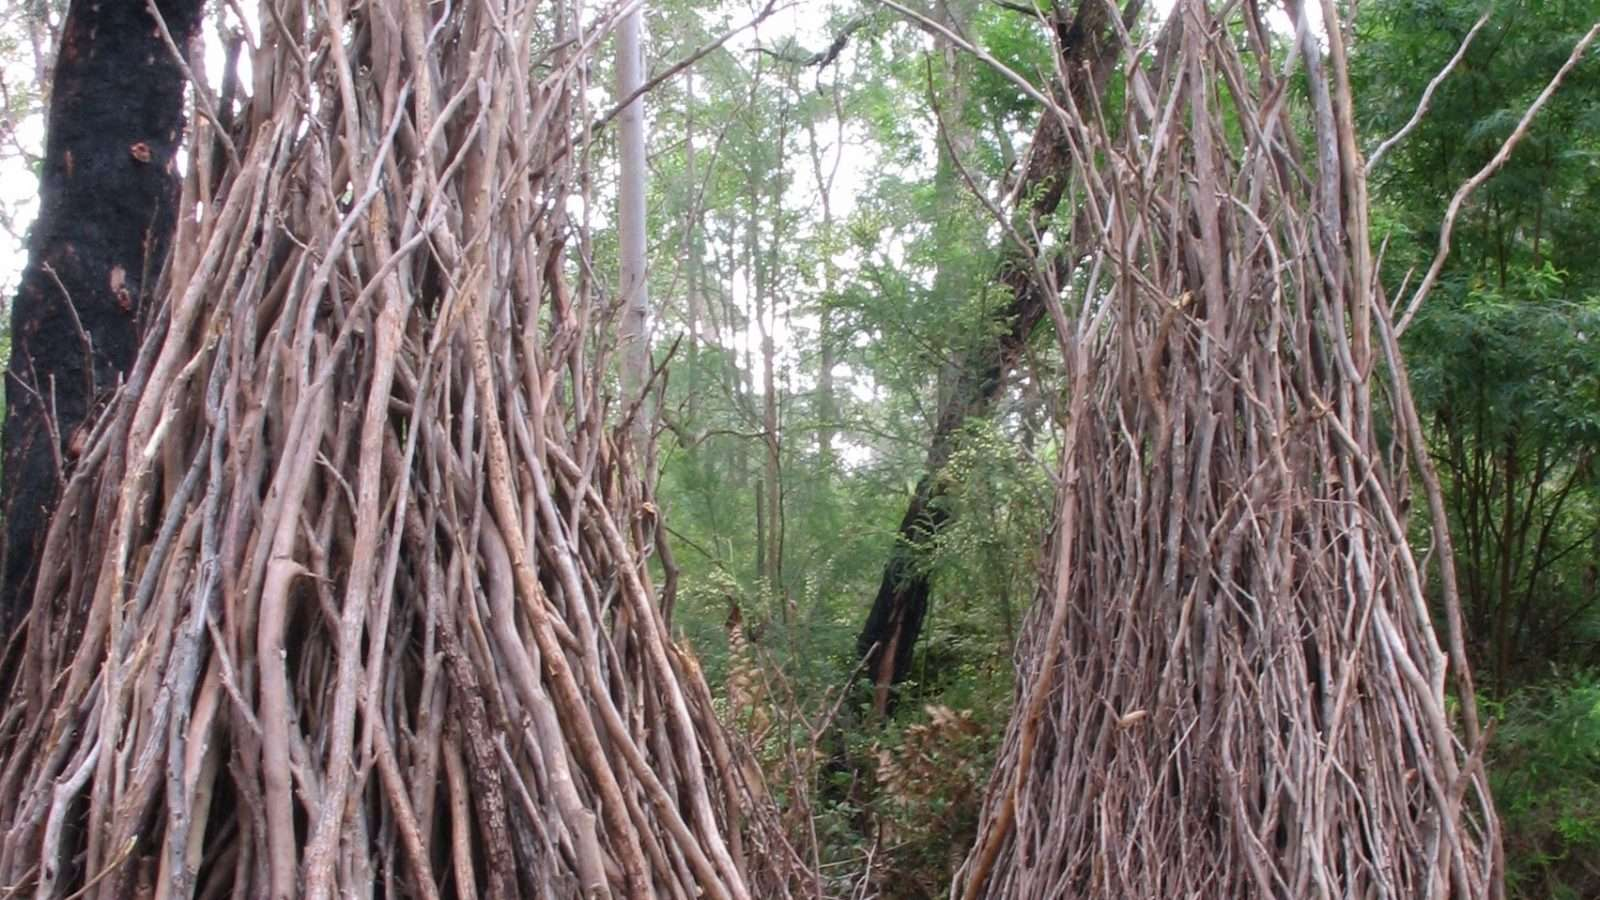 Bower by Gemma Ben Ari, commissioned in 2007, Understory Art & Nature Trail, Northcliffe